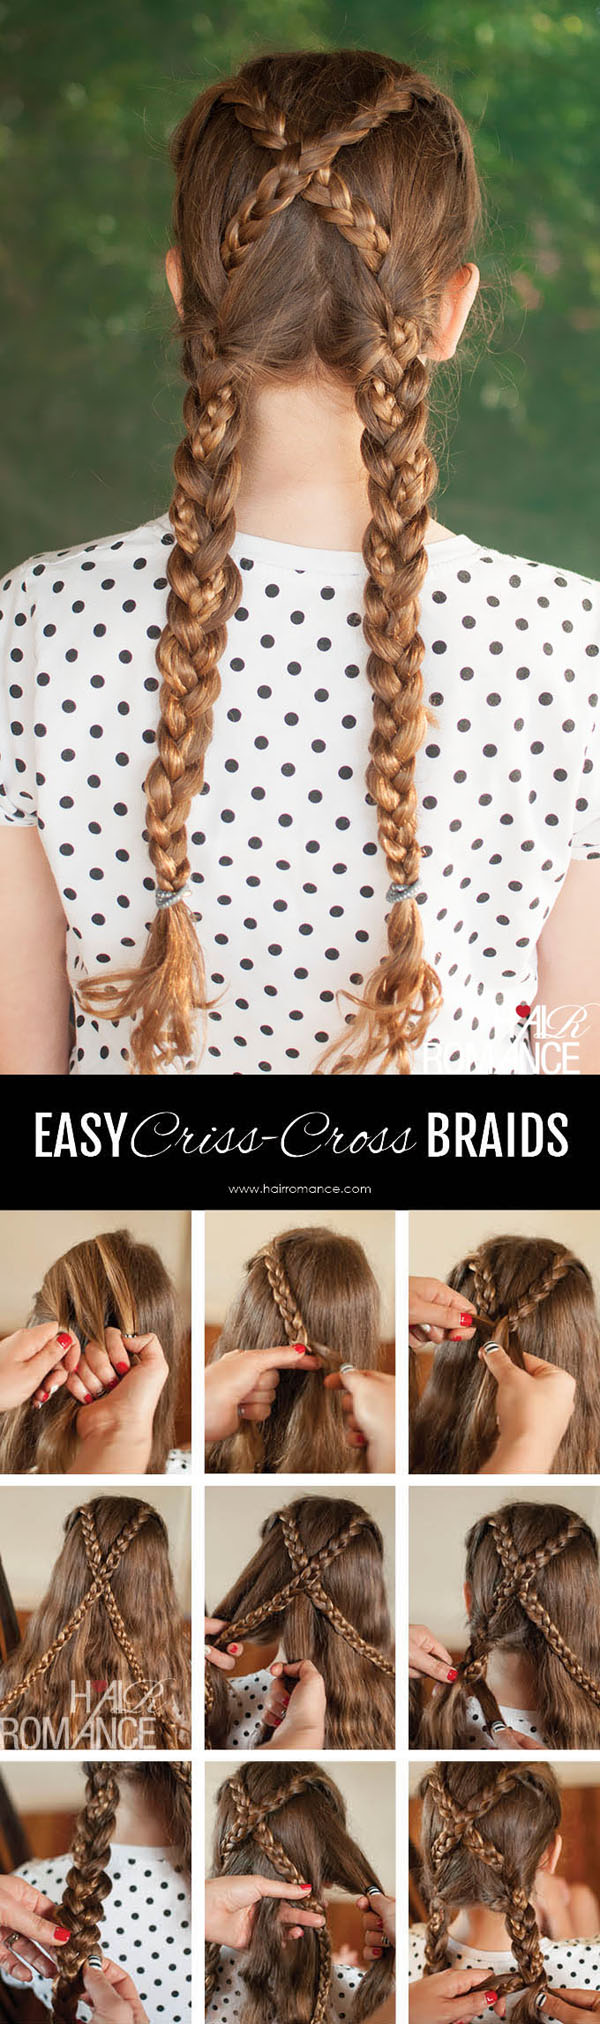 Hair-Romance-Back-to-school-hair-criss-cross-braids-hairstyle-tutorial-4